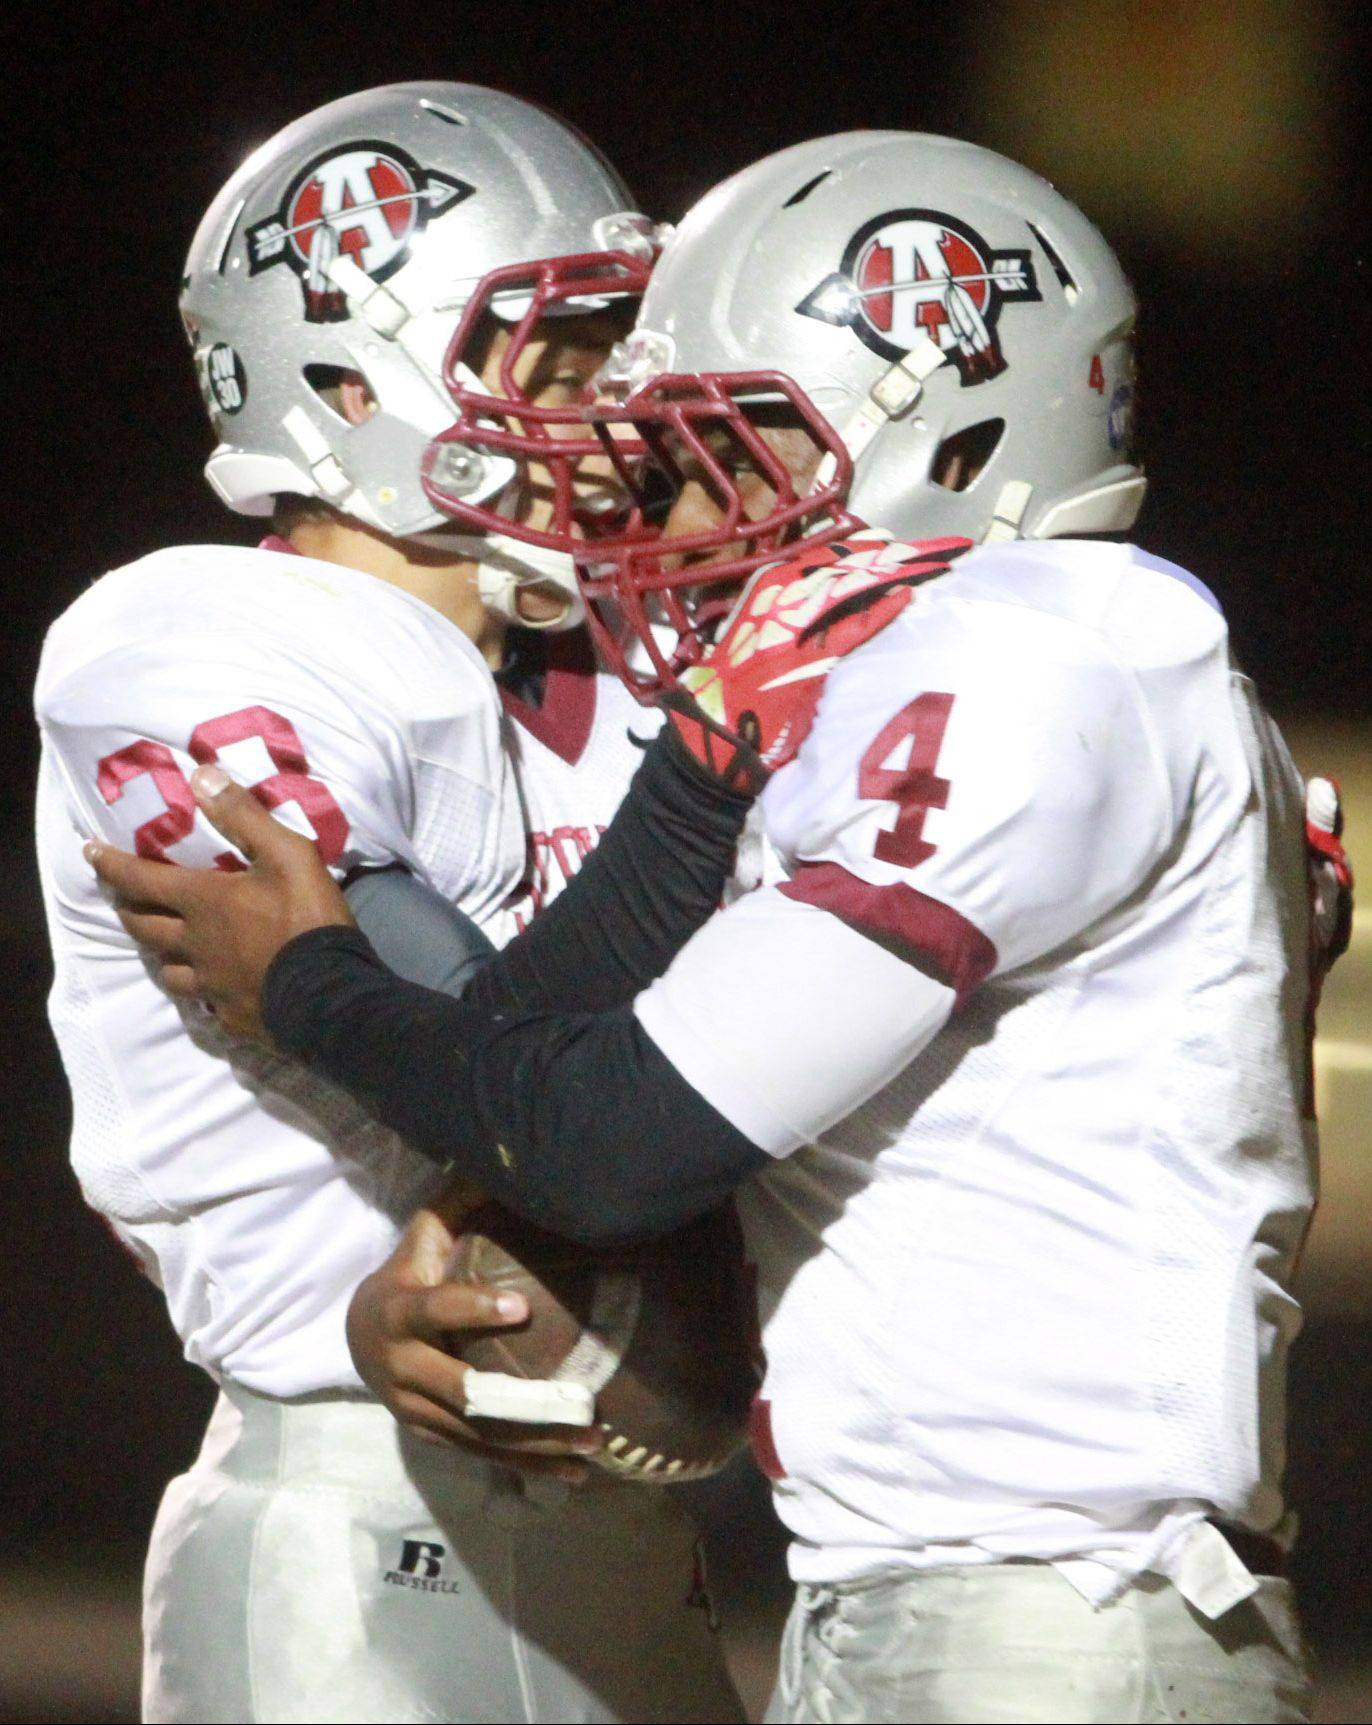 Antioch running back Griffin Hill, right, gets a hand from teammate Patrick Krause after running for the first touchdown of the game in the first quarter at Grant on Friday.